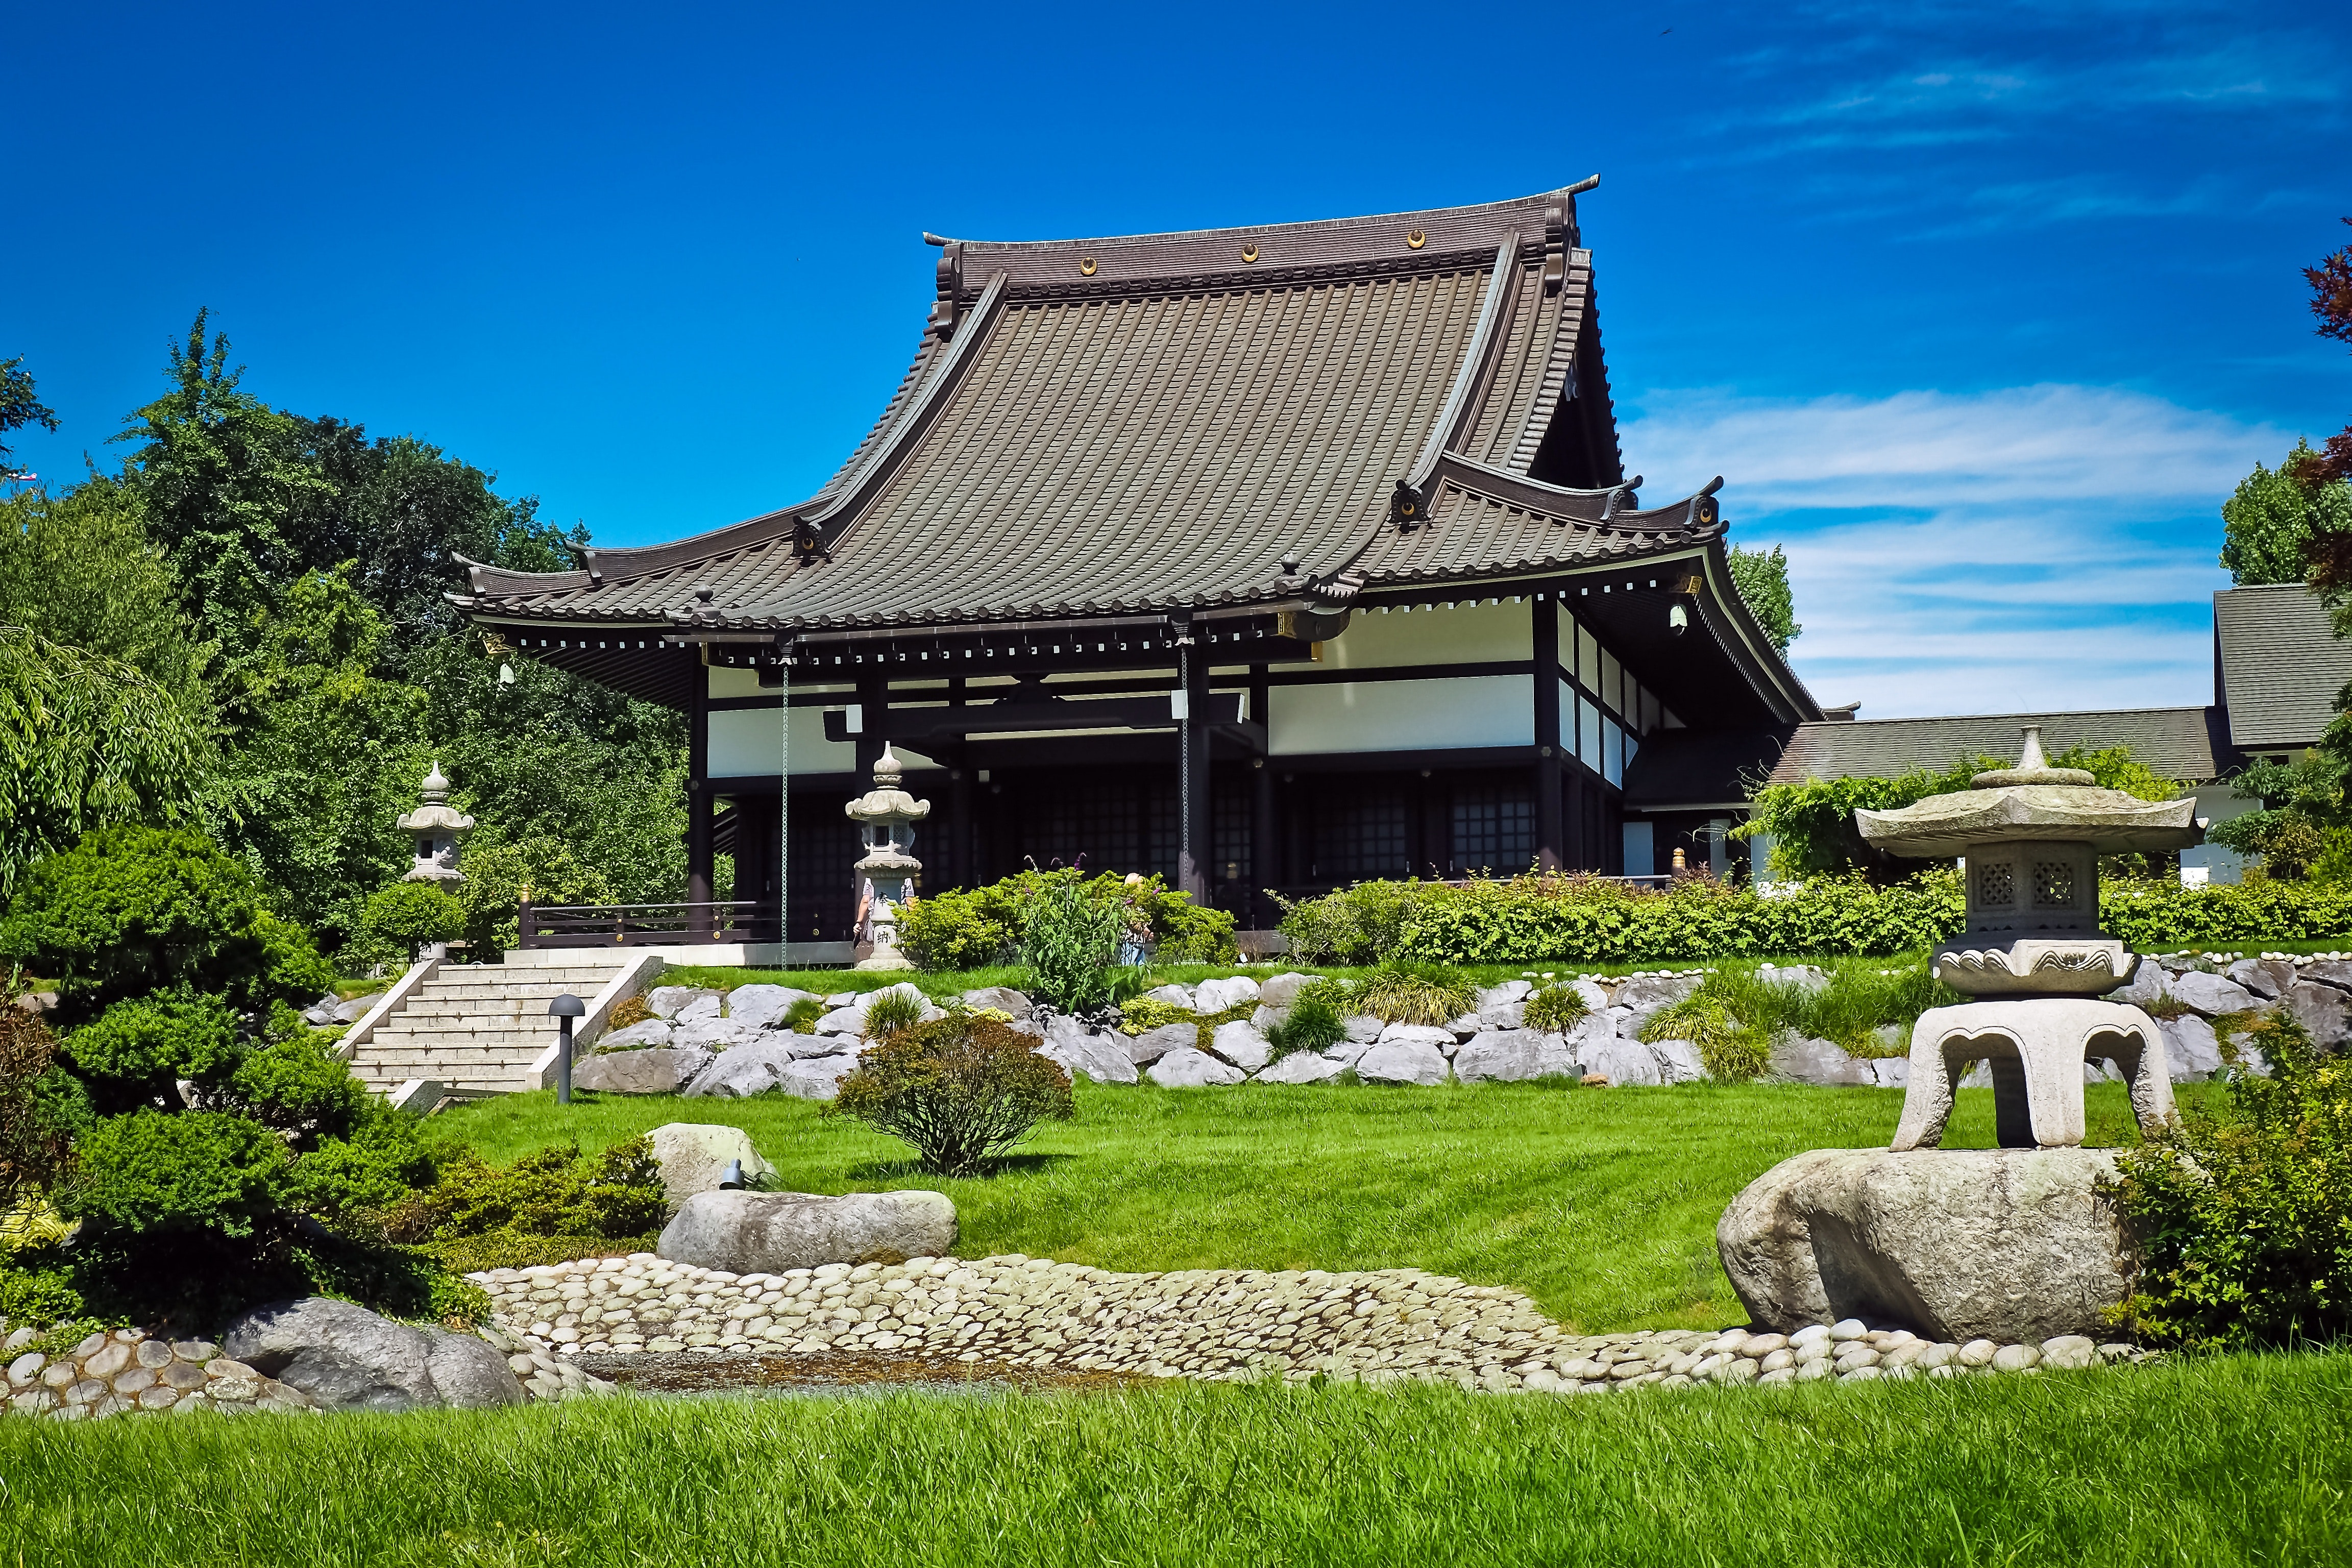 White and black temple surrounded by green grass field during daytime photo